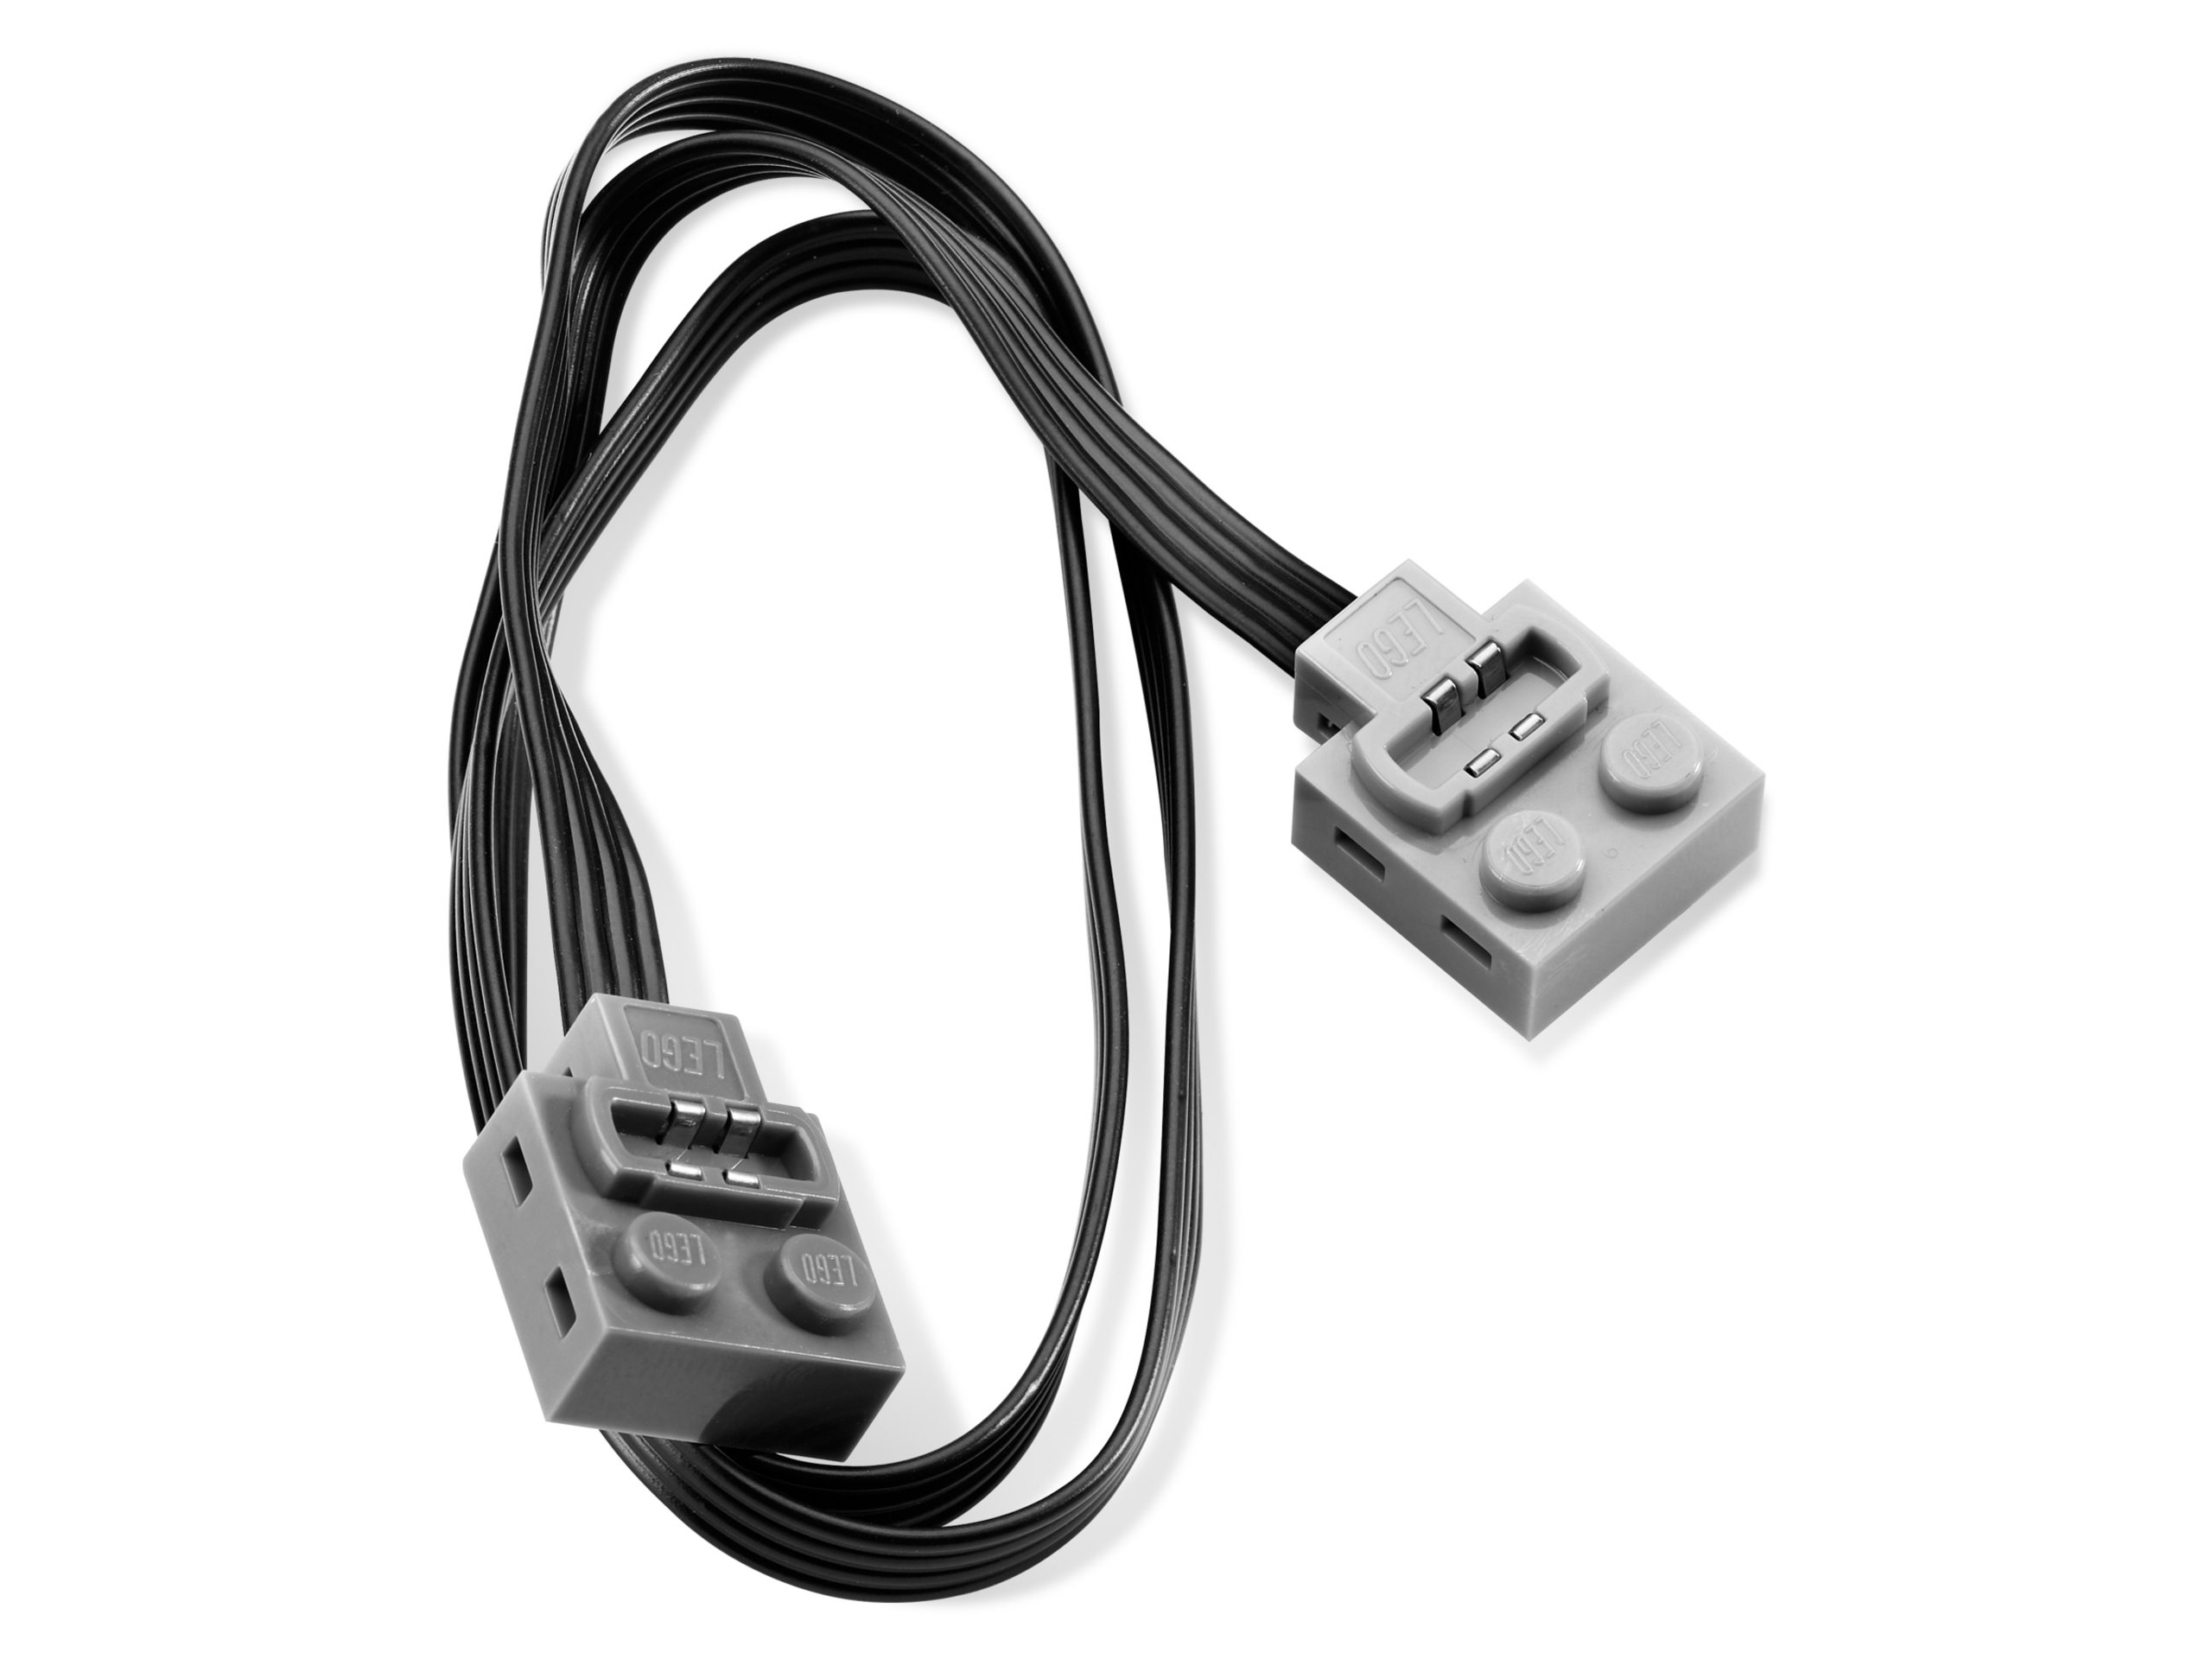 cable dextension power functions lego 8871 50 cm scaled